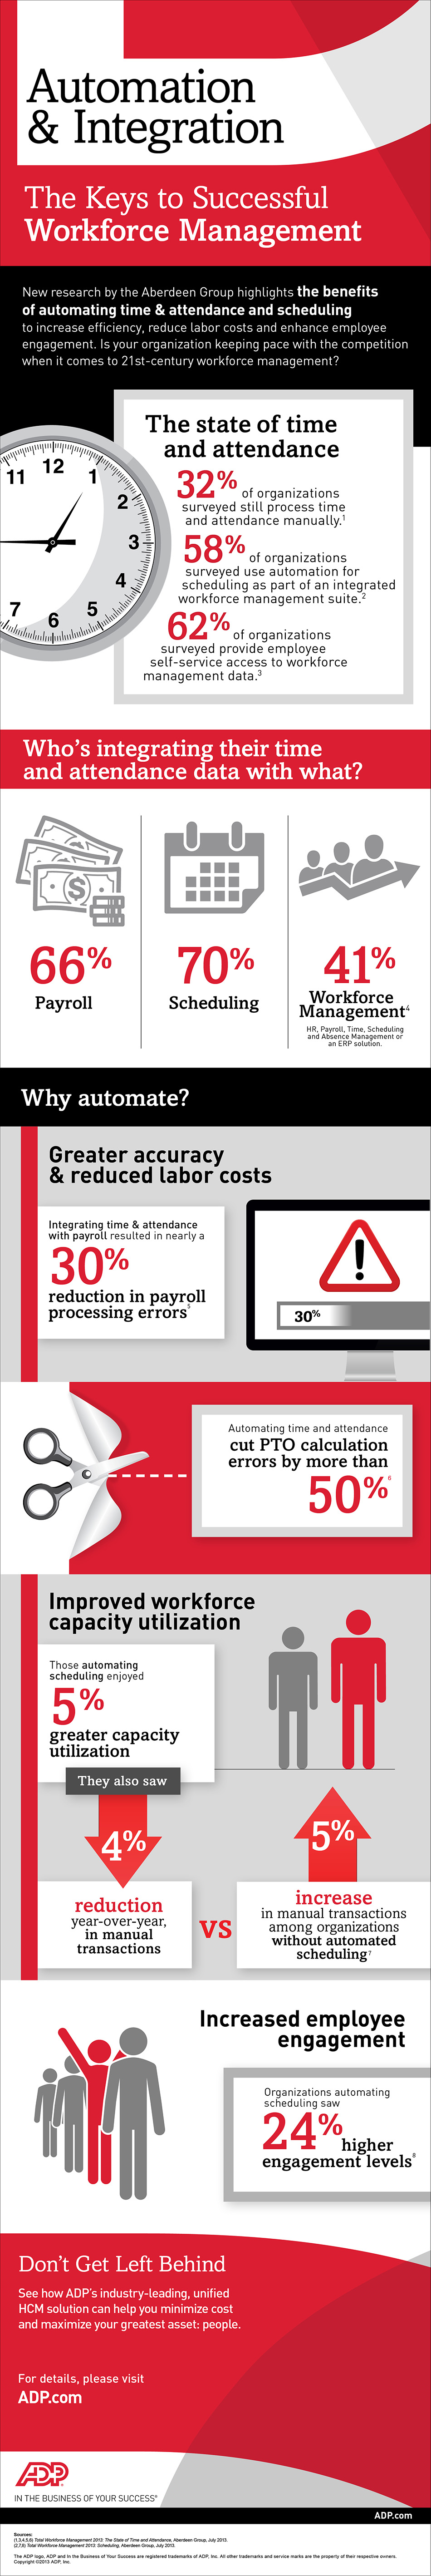 Infographic: Automation & Integration -The Key to Successful Workforce Management